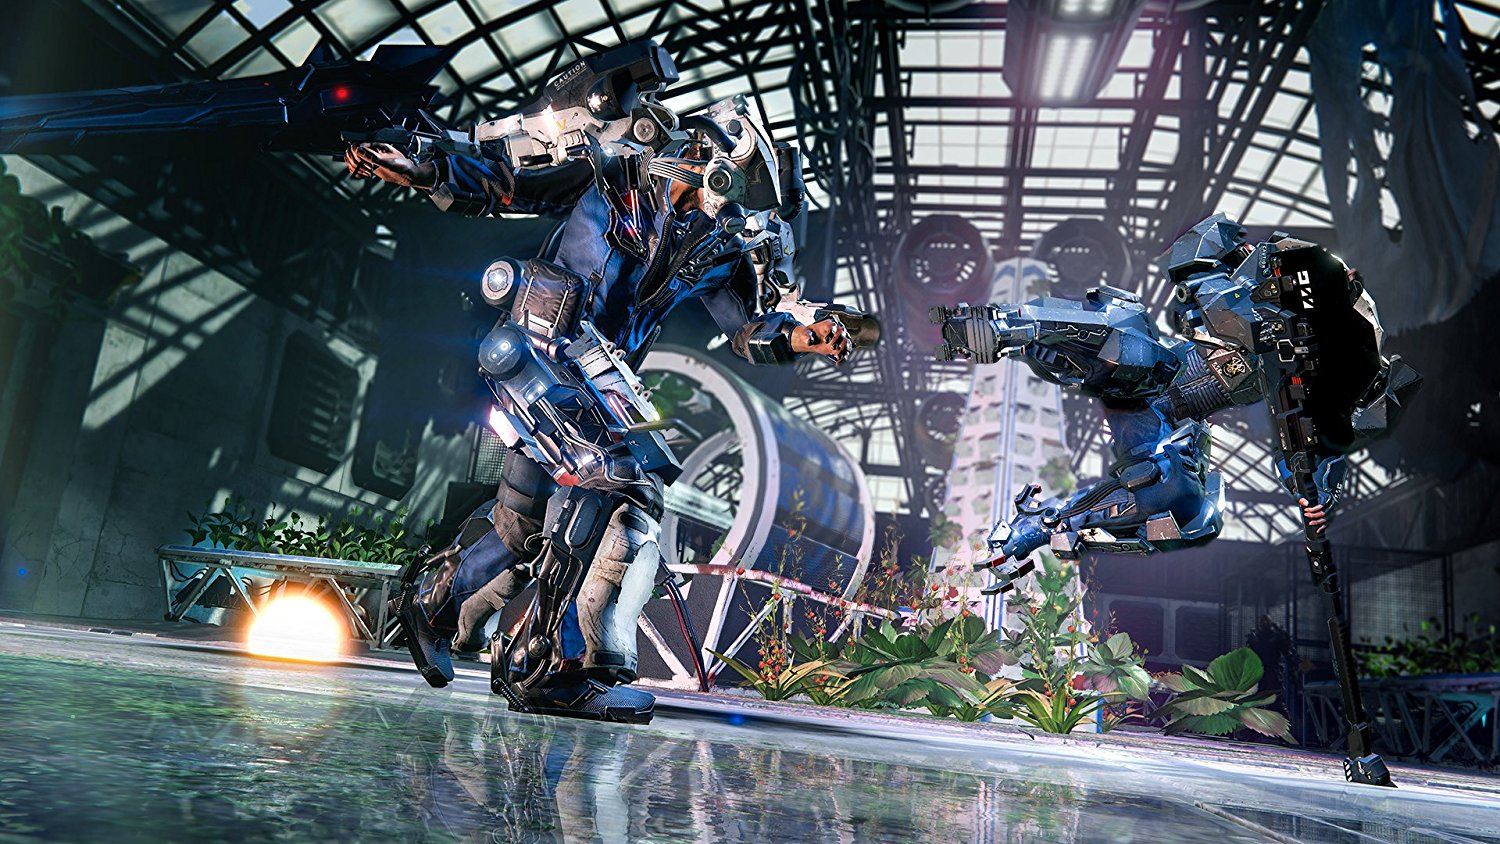 The Surge image 3